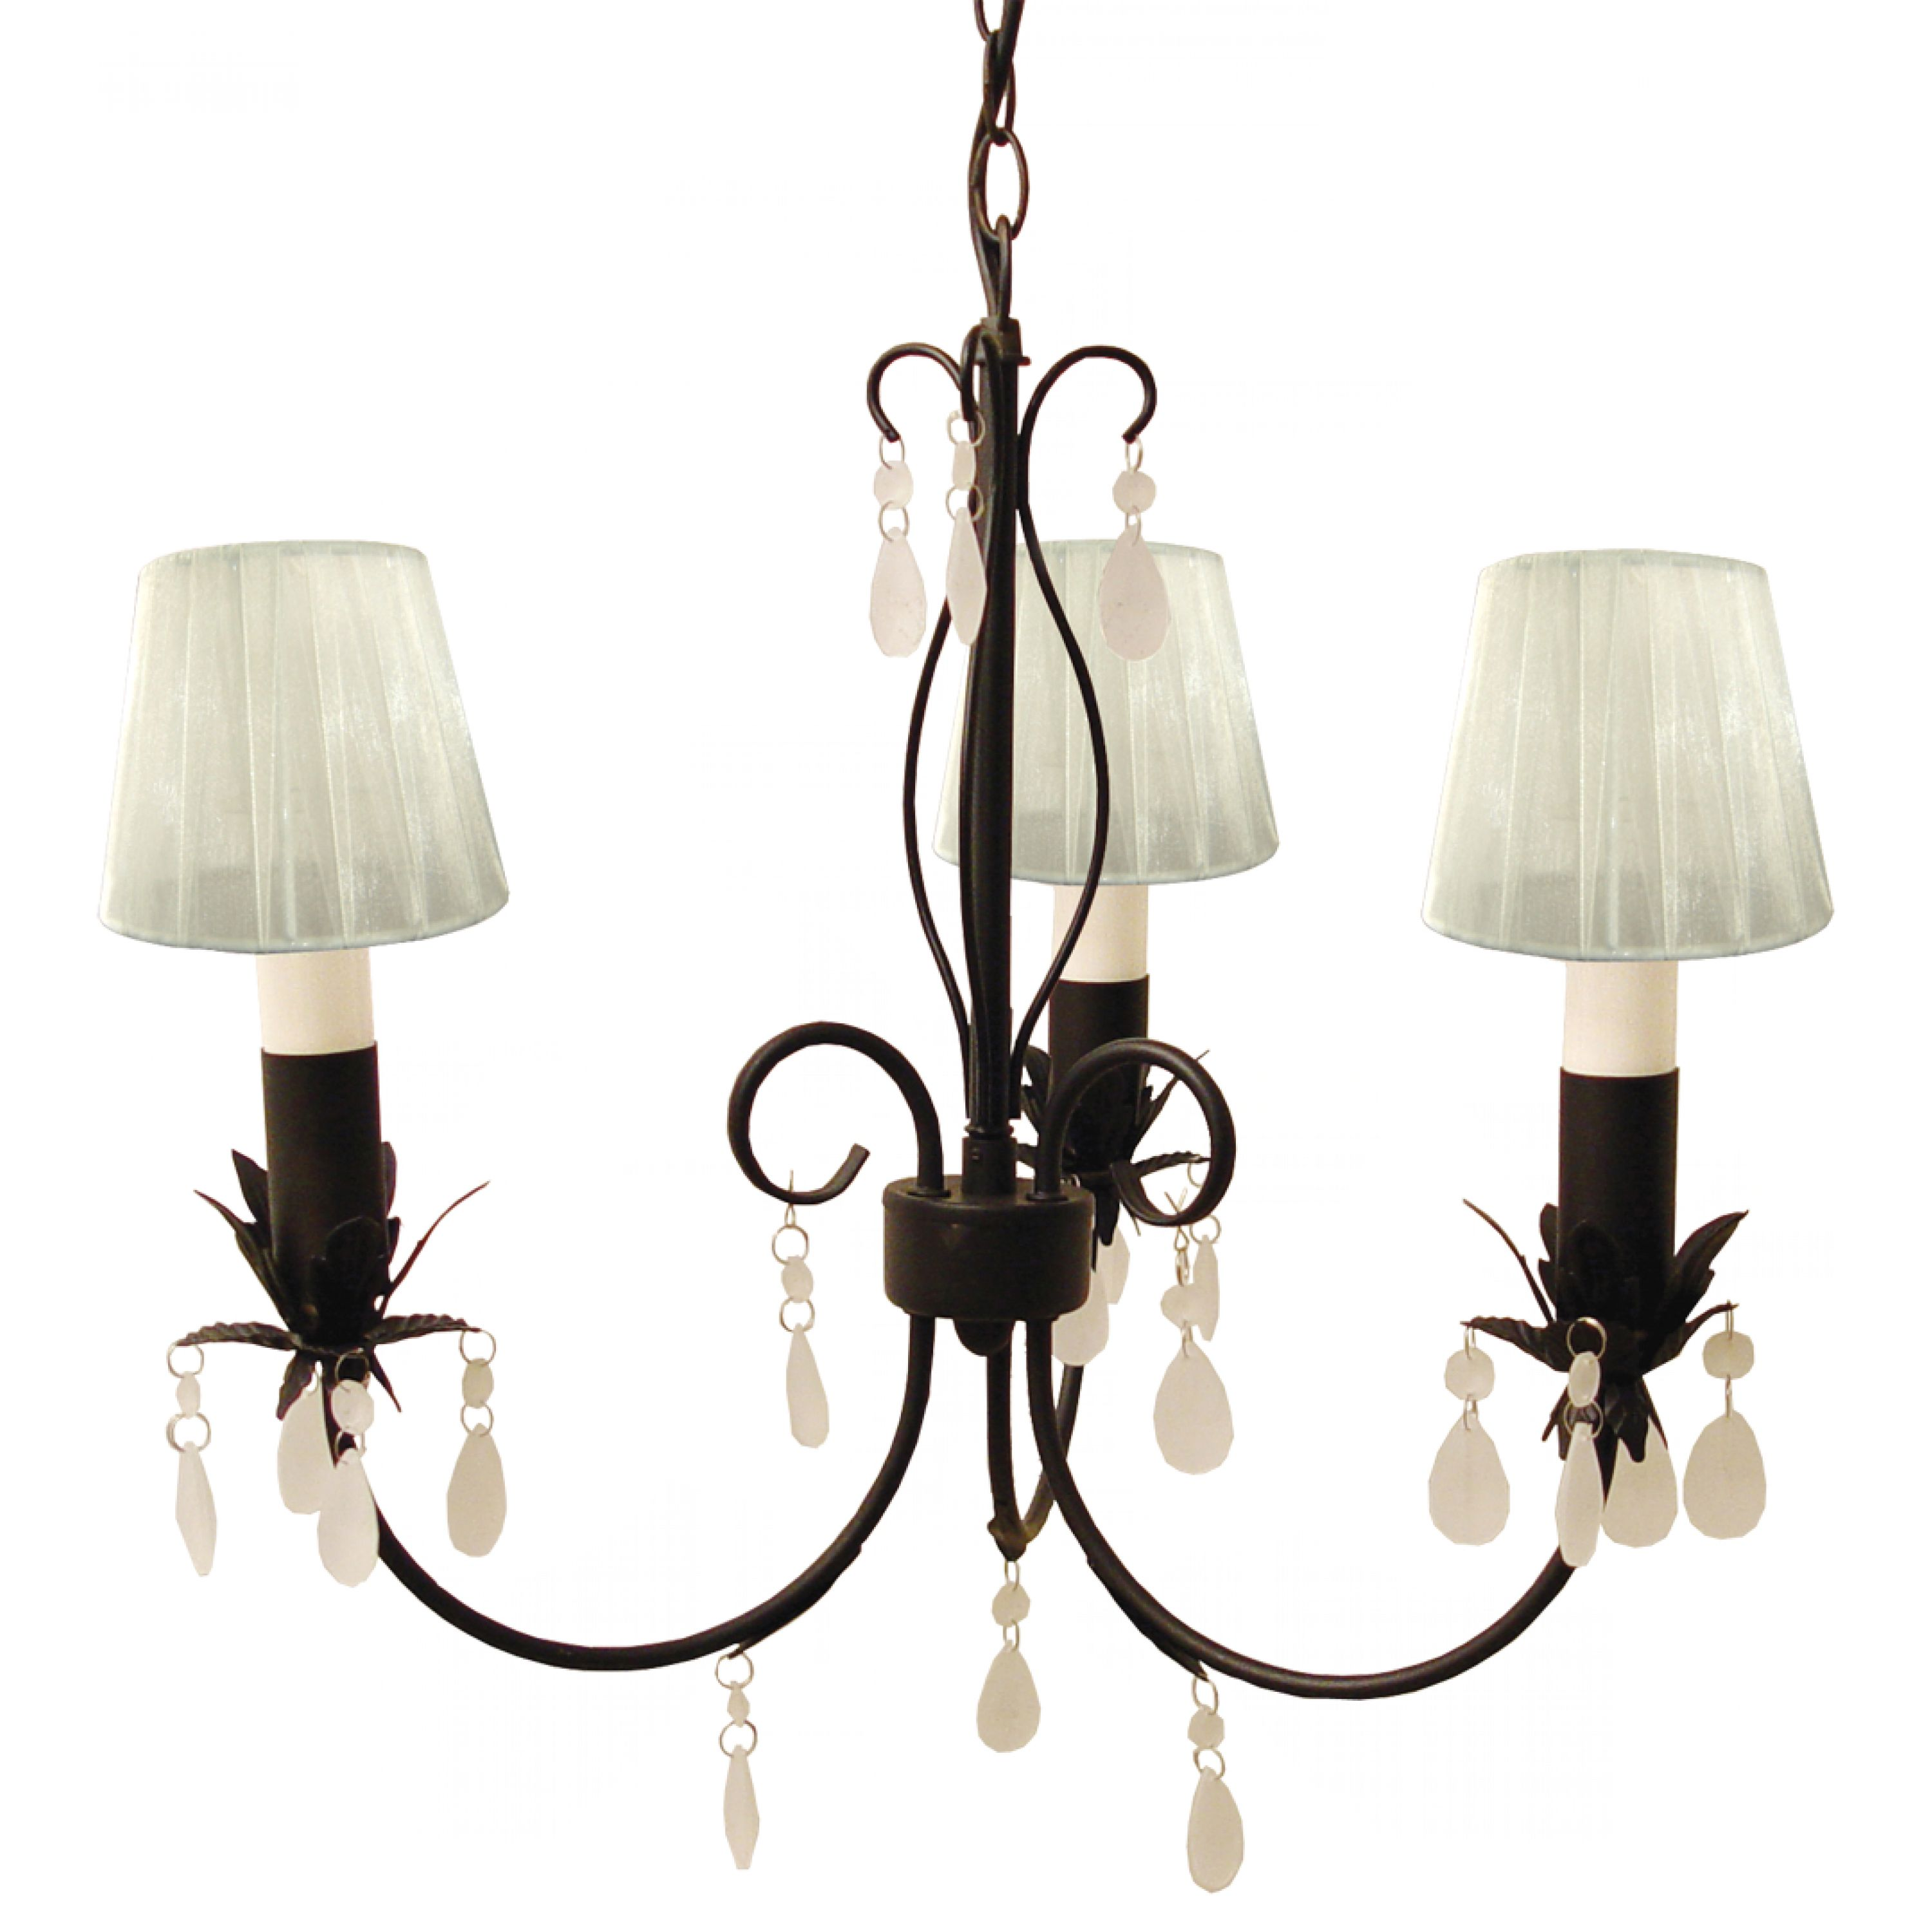 Cici Light Shade (26cm, black, shade only)